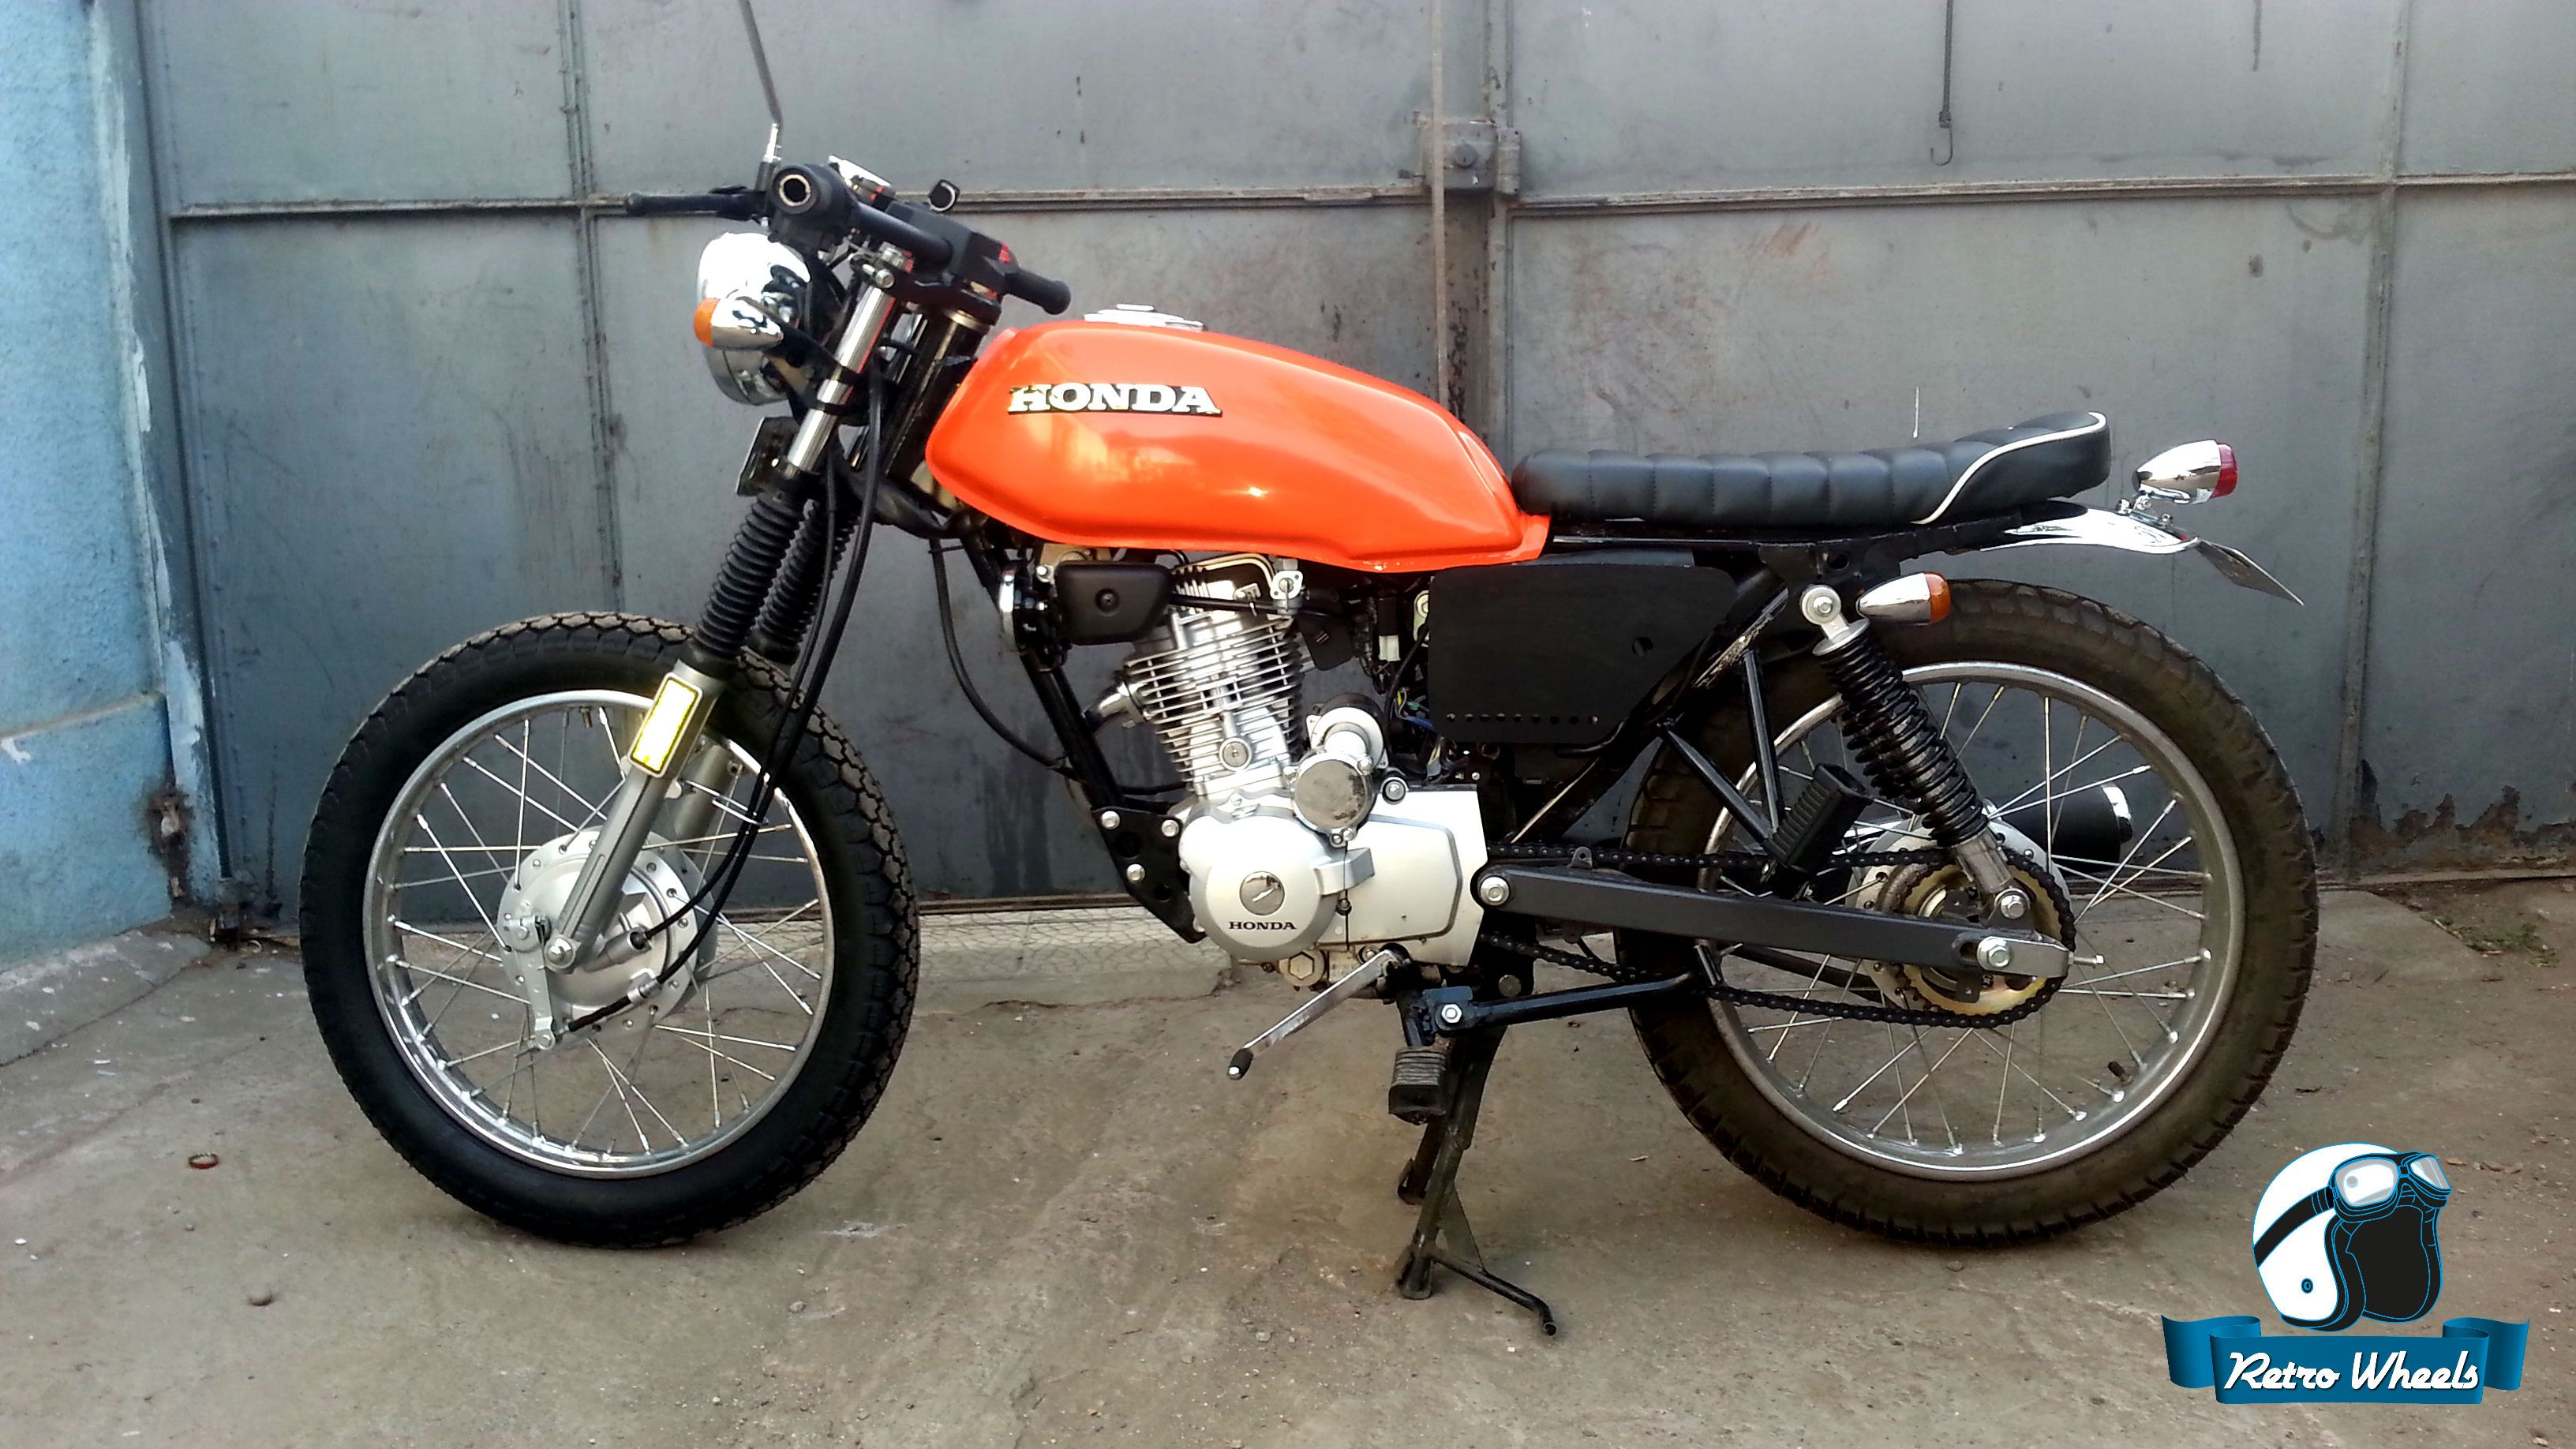 honda cgl 125 cafe racer retro wheels pinterest. Black Bedroom Furniture Sets. Home Design Ideas